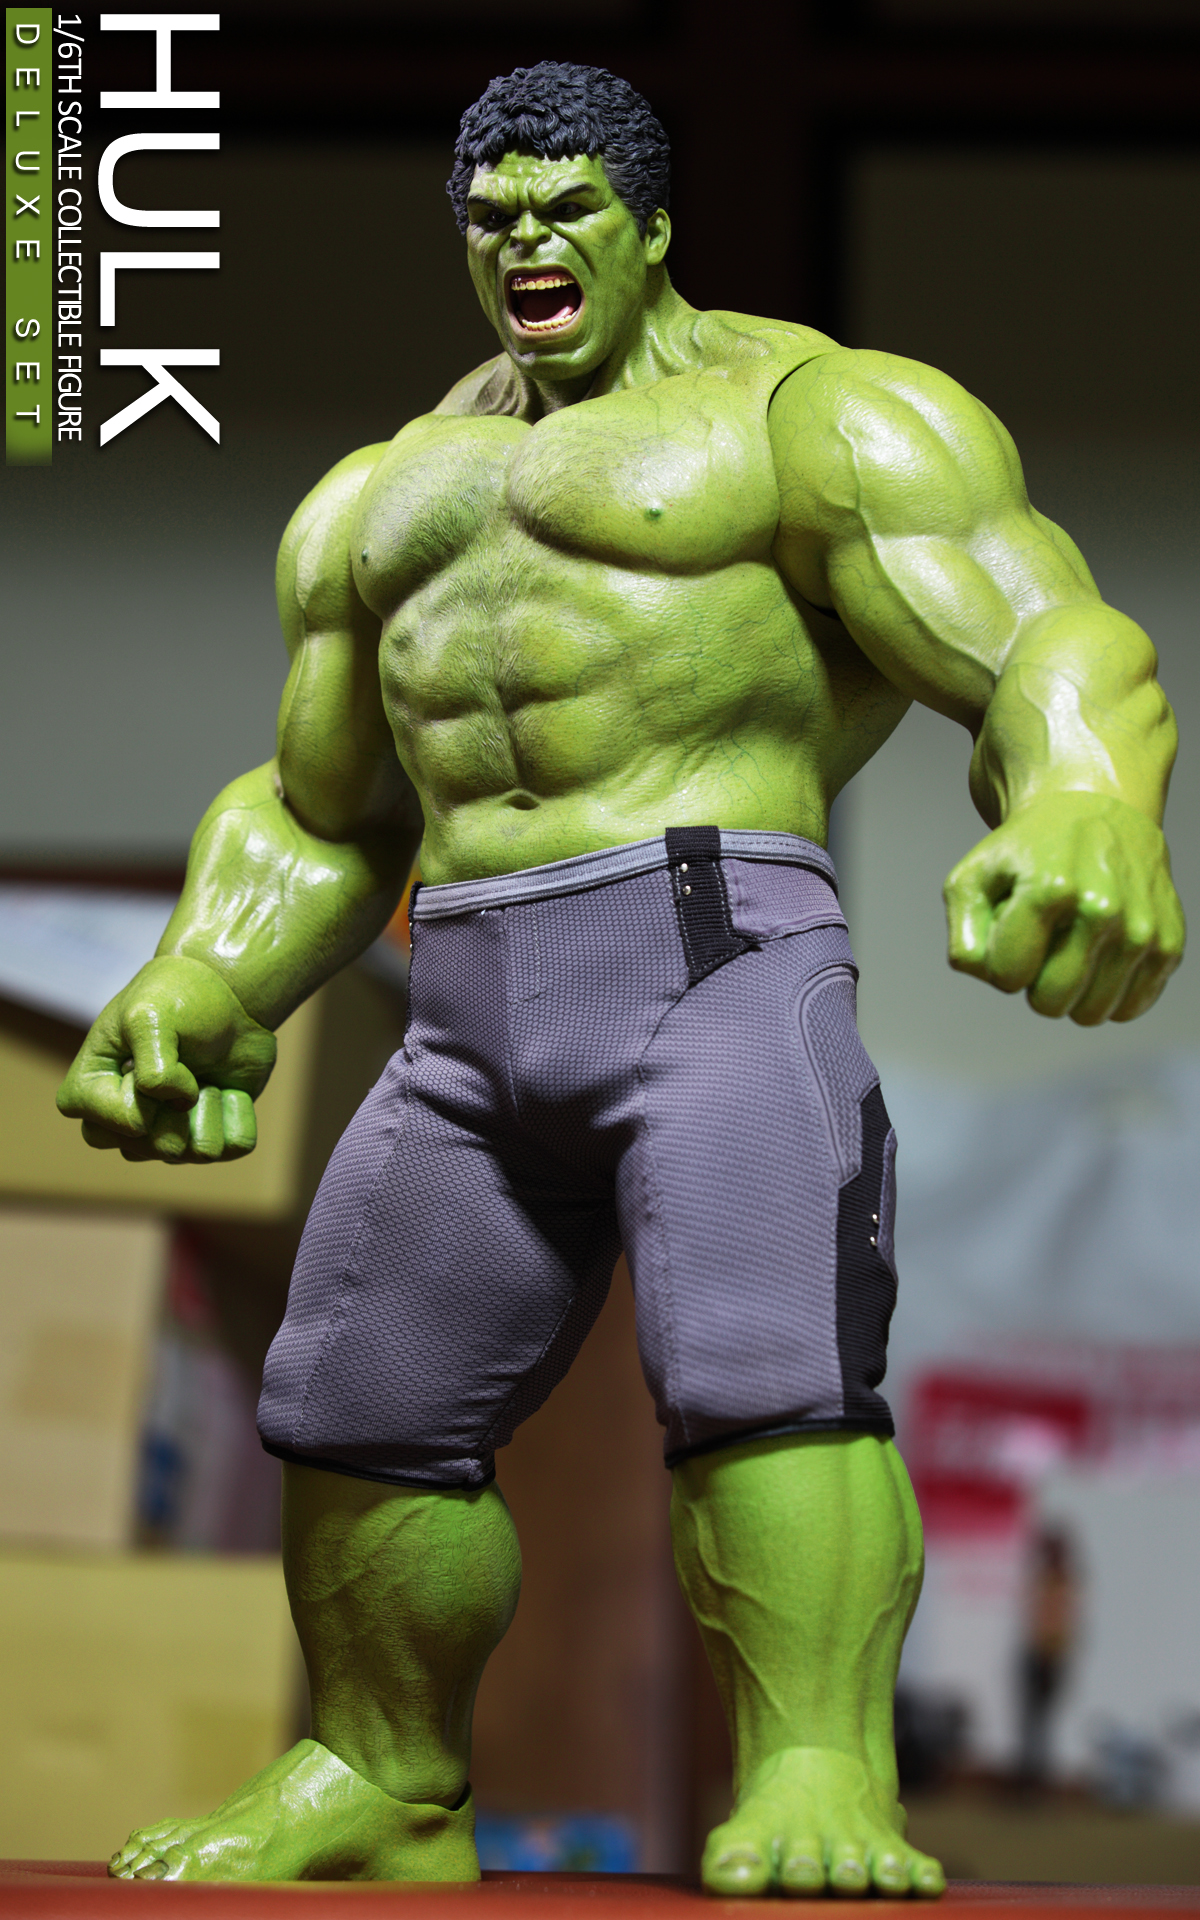 hottoys-avengers-age-of-ultron-hulk-picture06